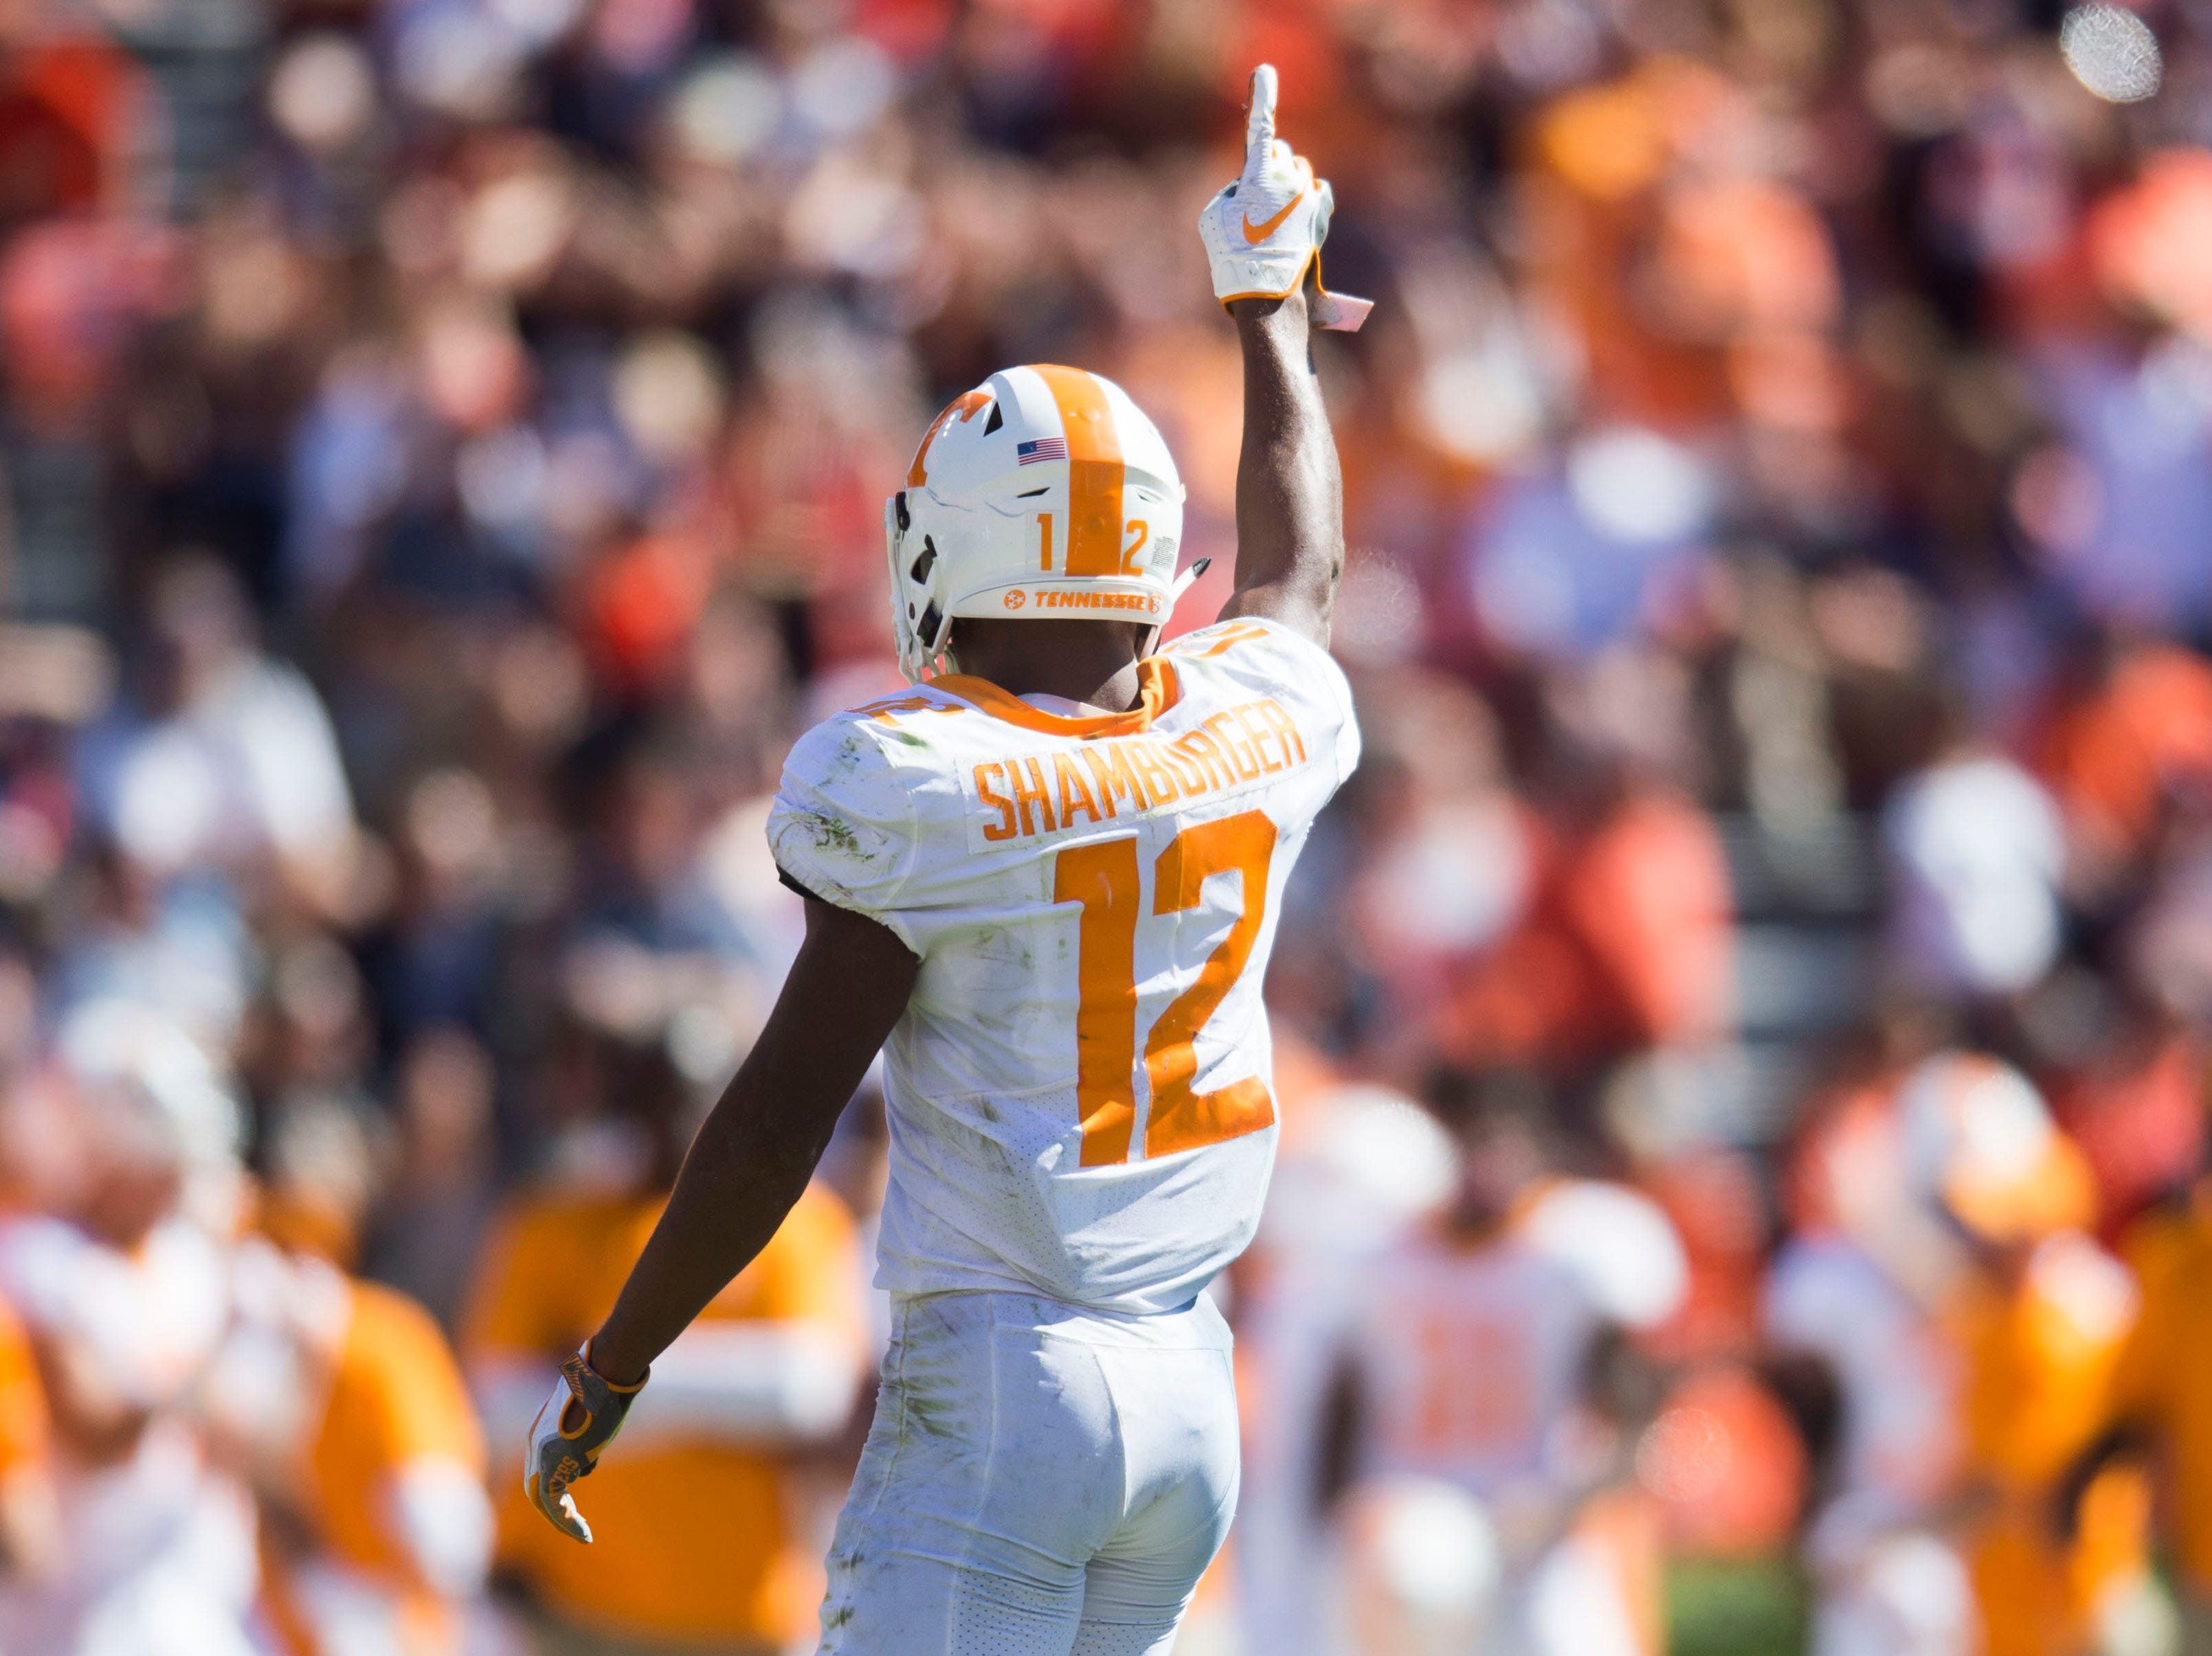 Tennessee defensive back Shawn Shamburger (12) celebrates during a game between Tennessee and Auburn at Jordan-Hare Stadium in Auburn, Ala. Saturday, Oct. 13, 2018. Tennessee defeated Auburn 30-24.